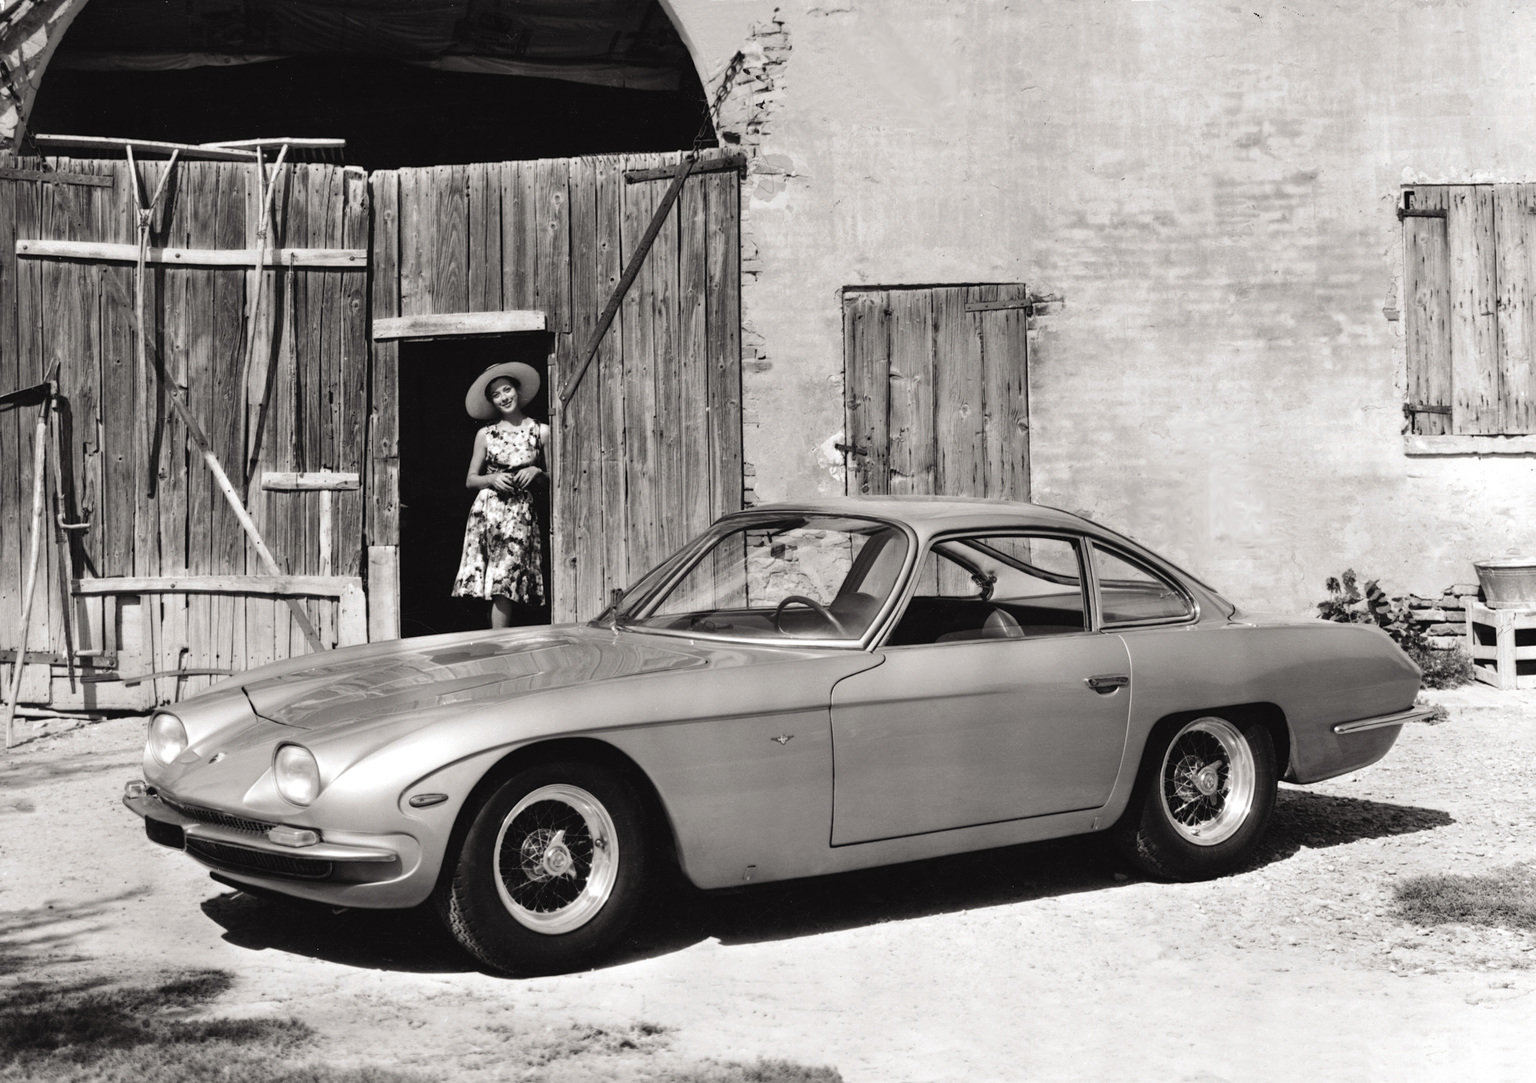 1964 Lamborghini 350 GT parked outside of a building